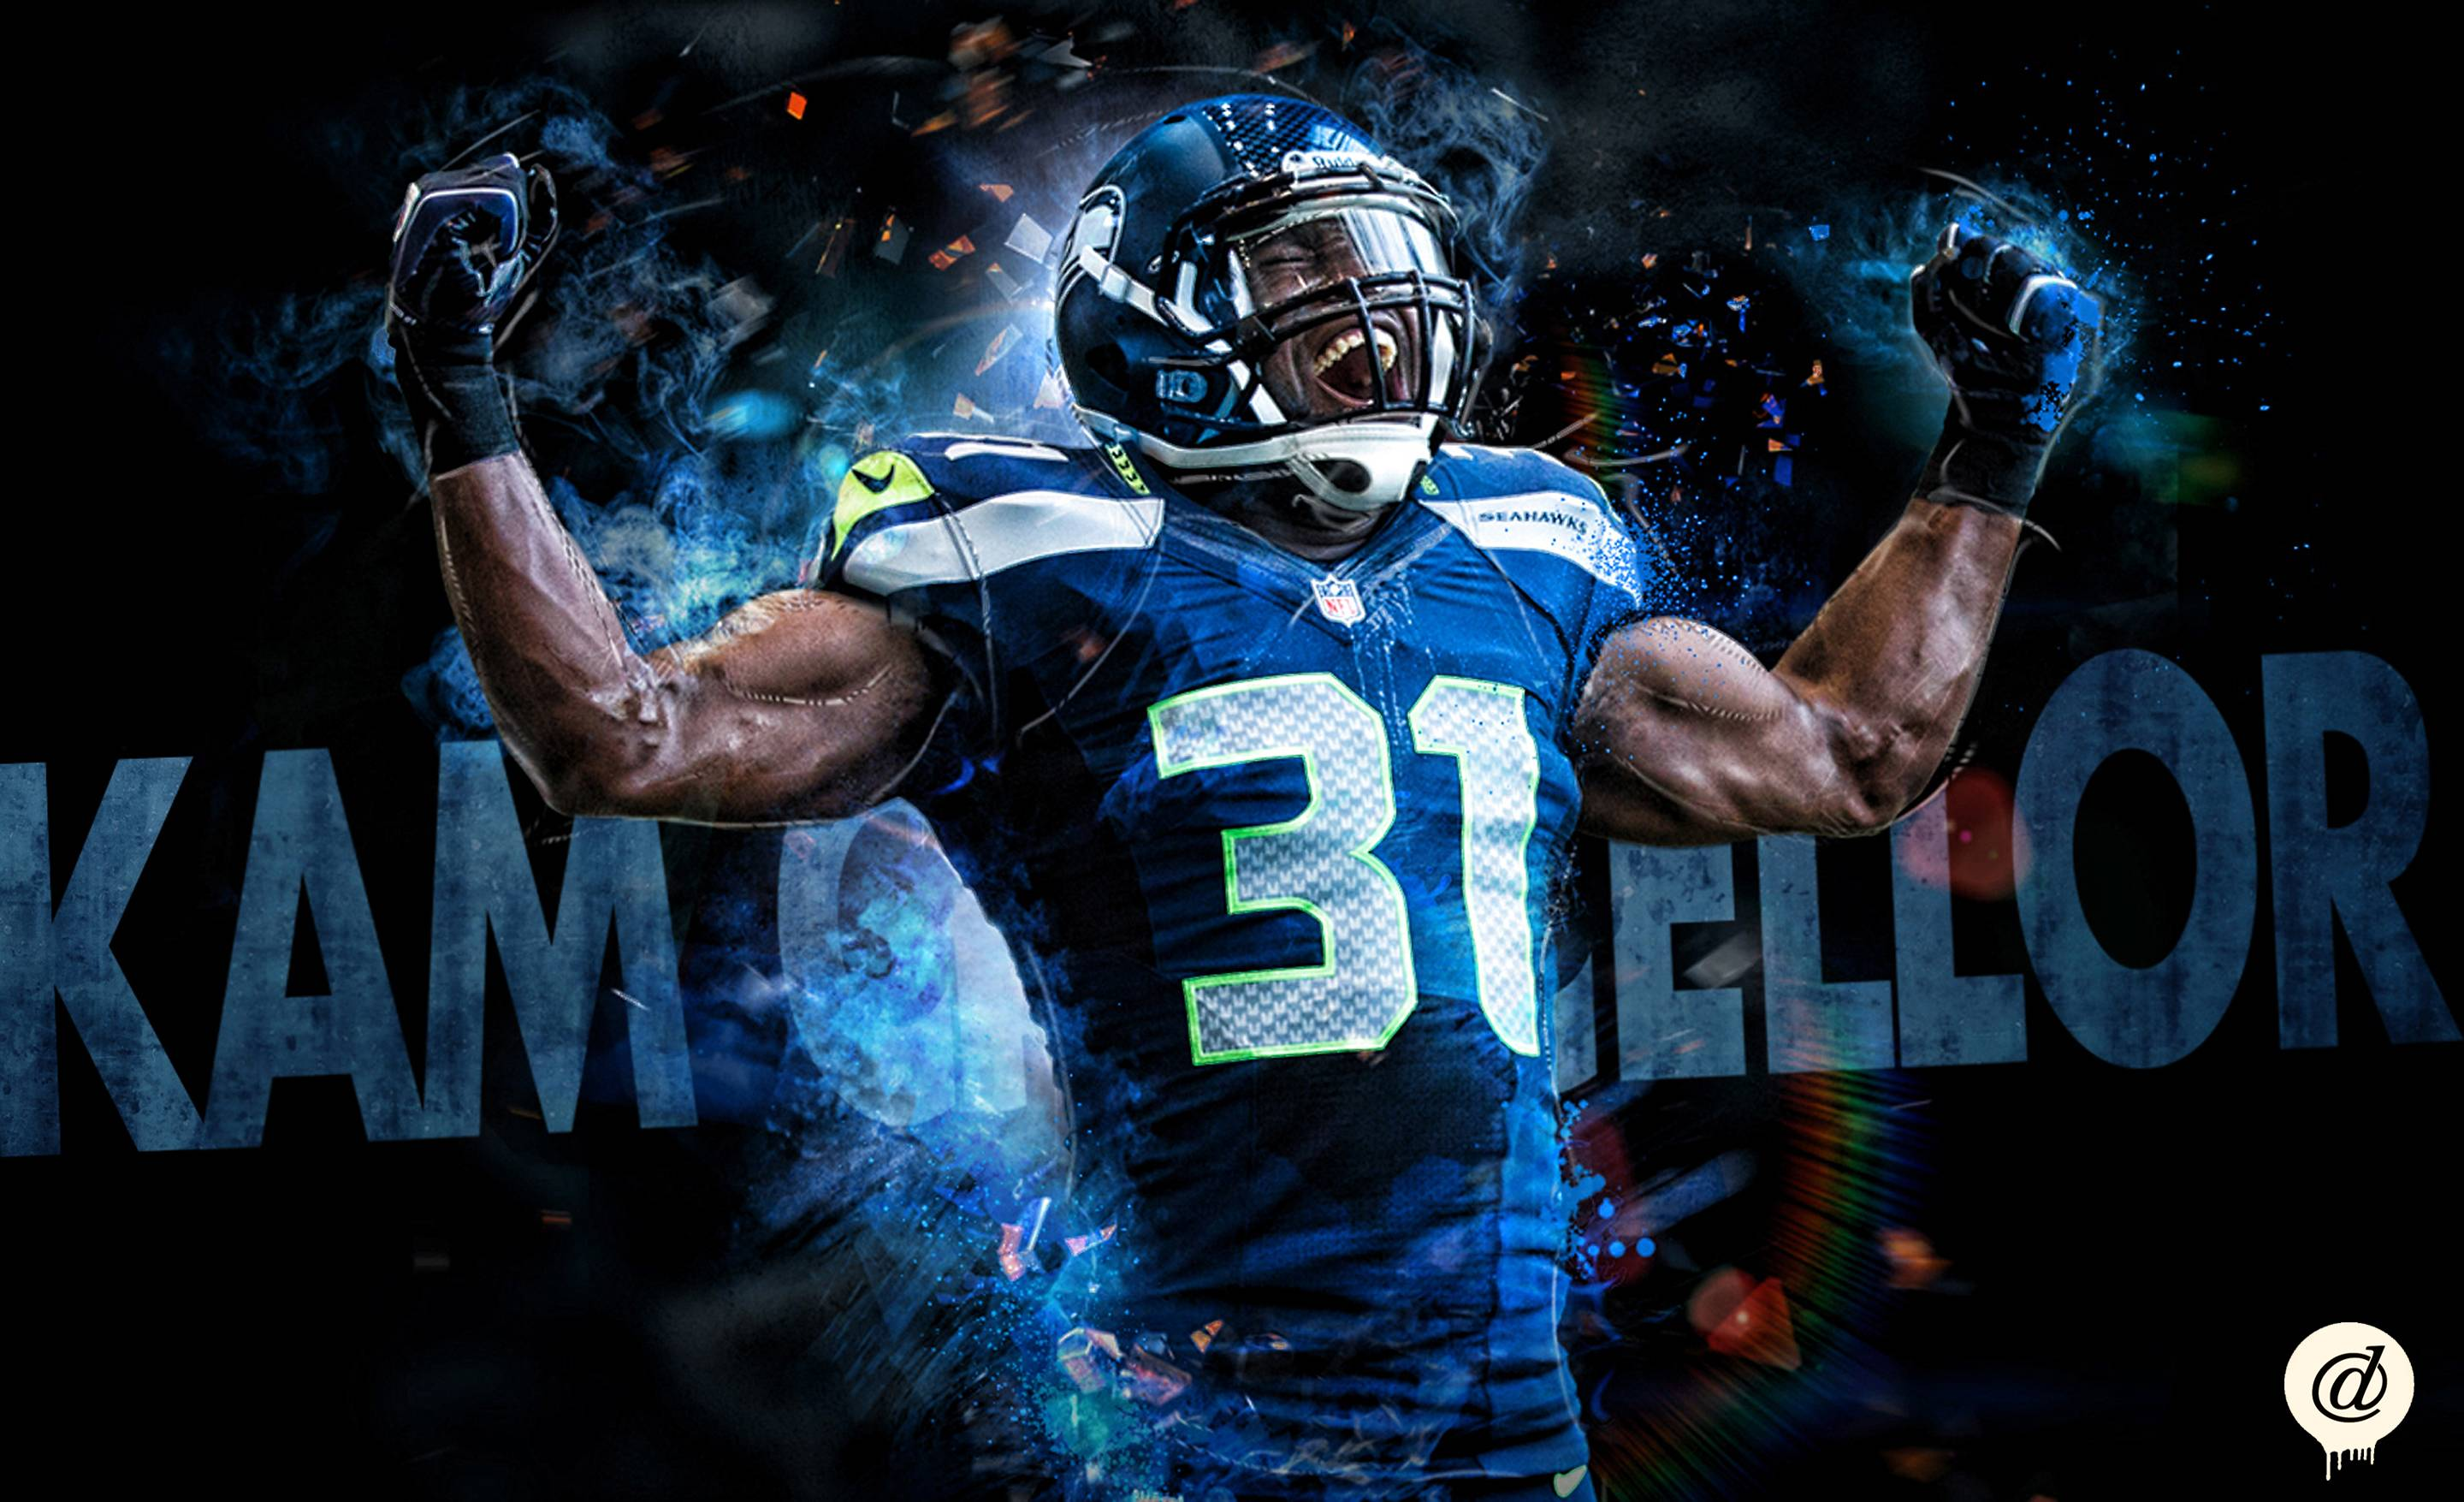 Seattle seahawks wallpapers wallpaper cave seattle seahawks wallpaper by jdot2dap on deviantart voltagebd Image collections